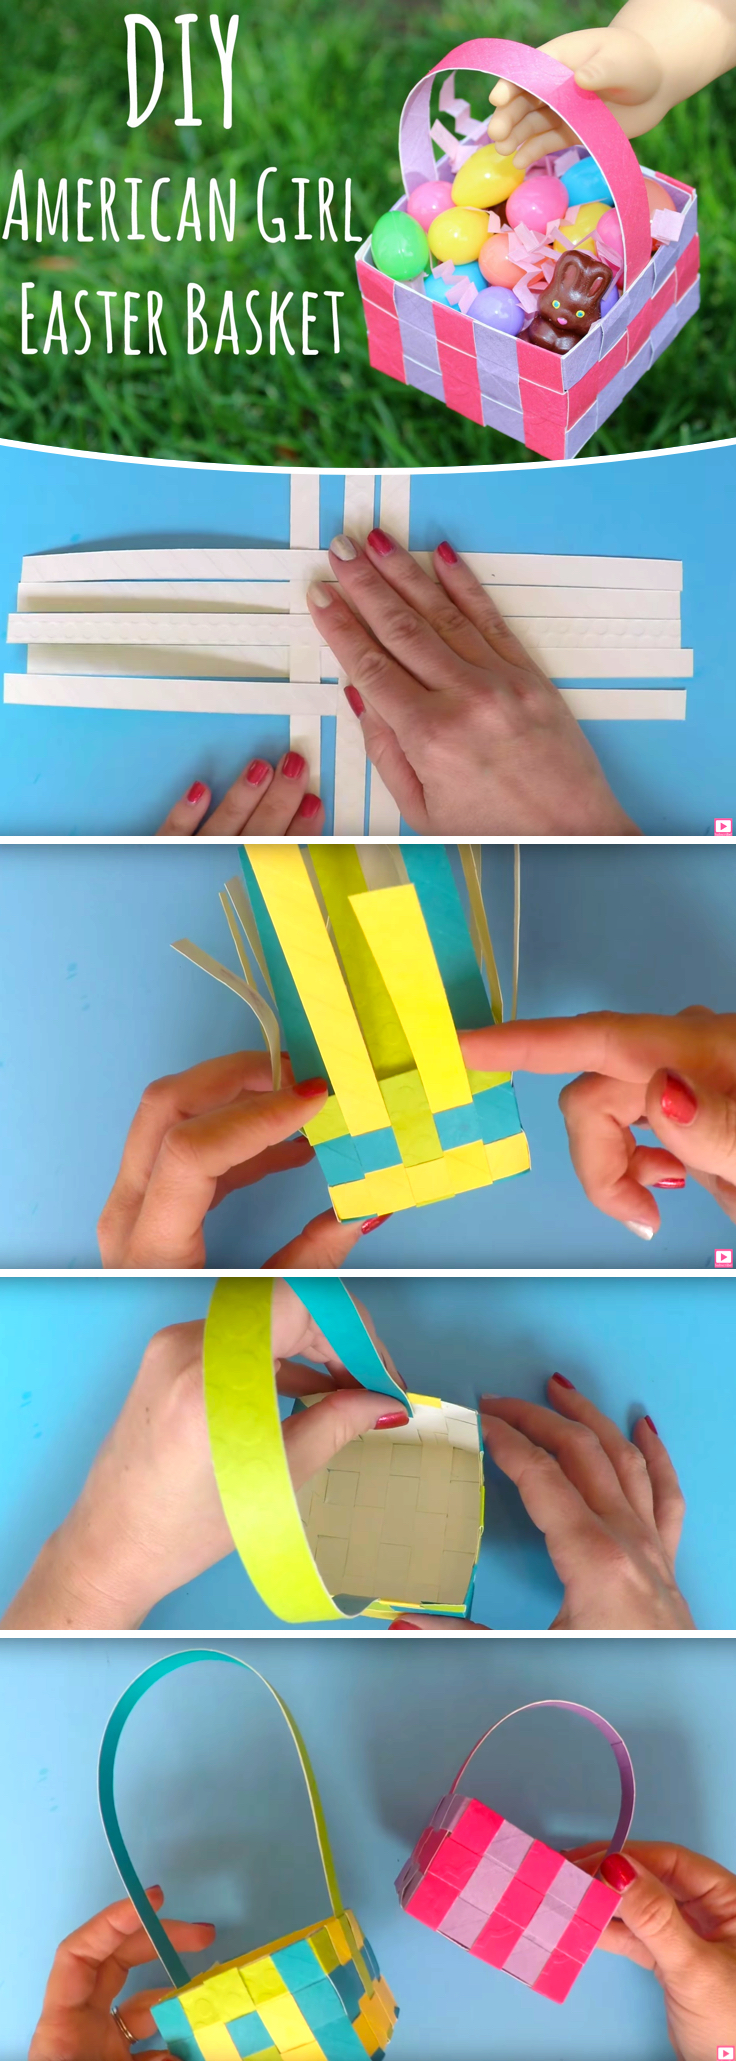 How to Make DIY Doll Easter Baskets